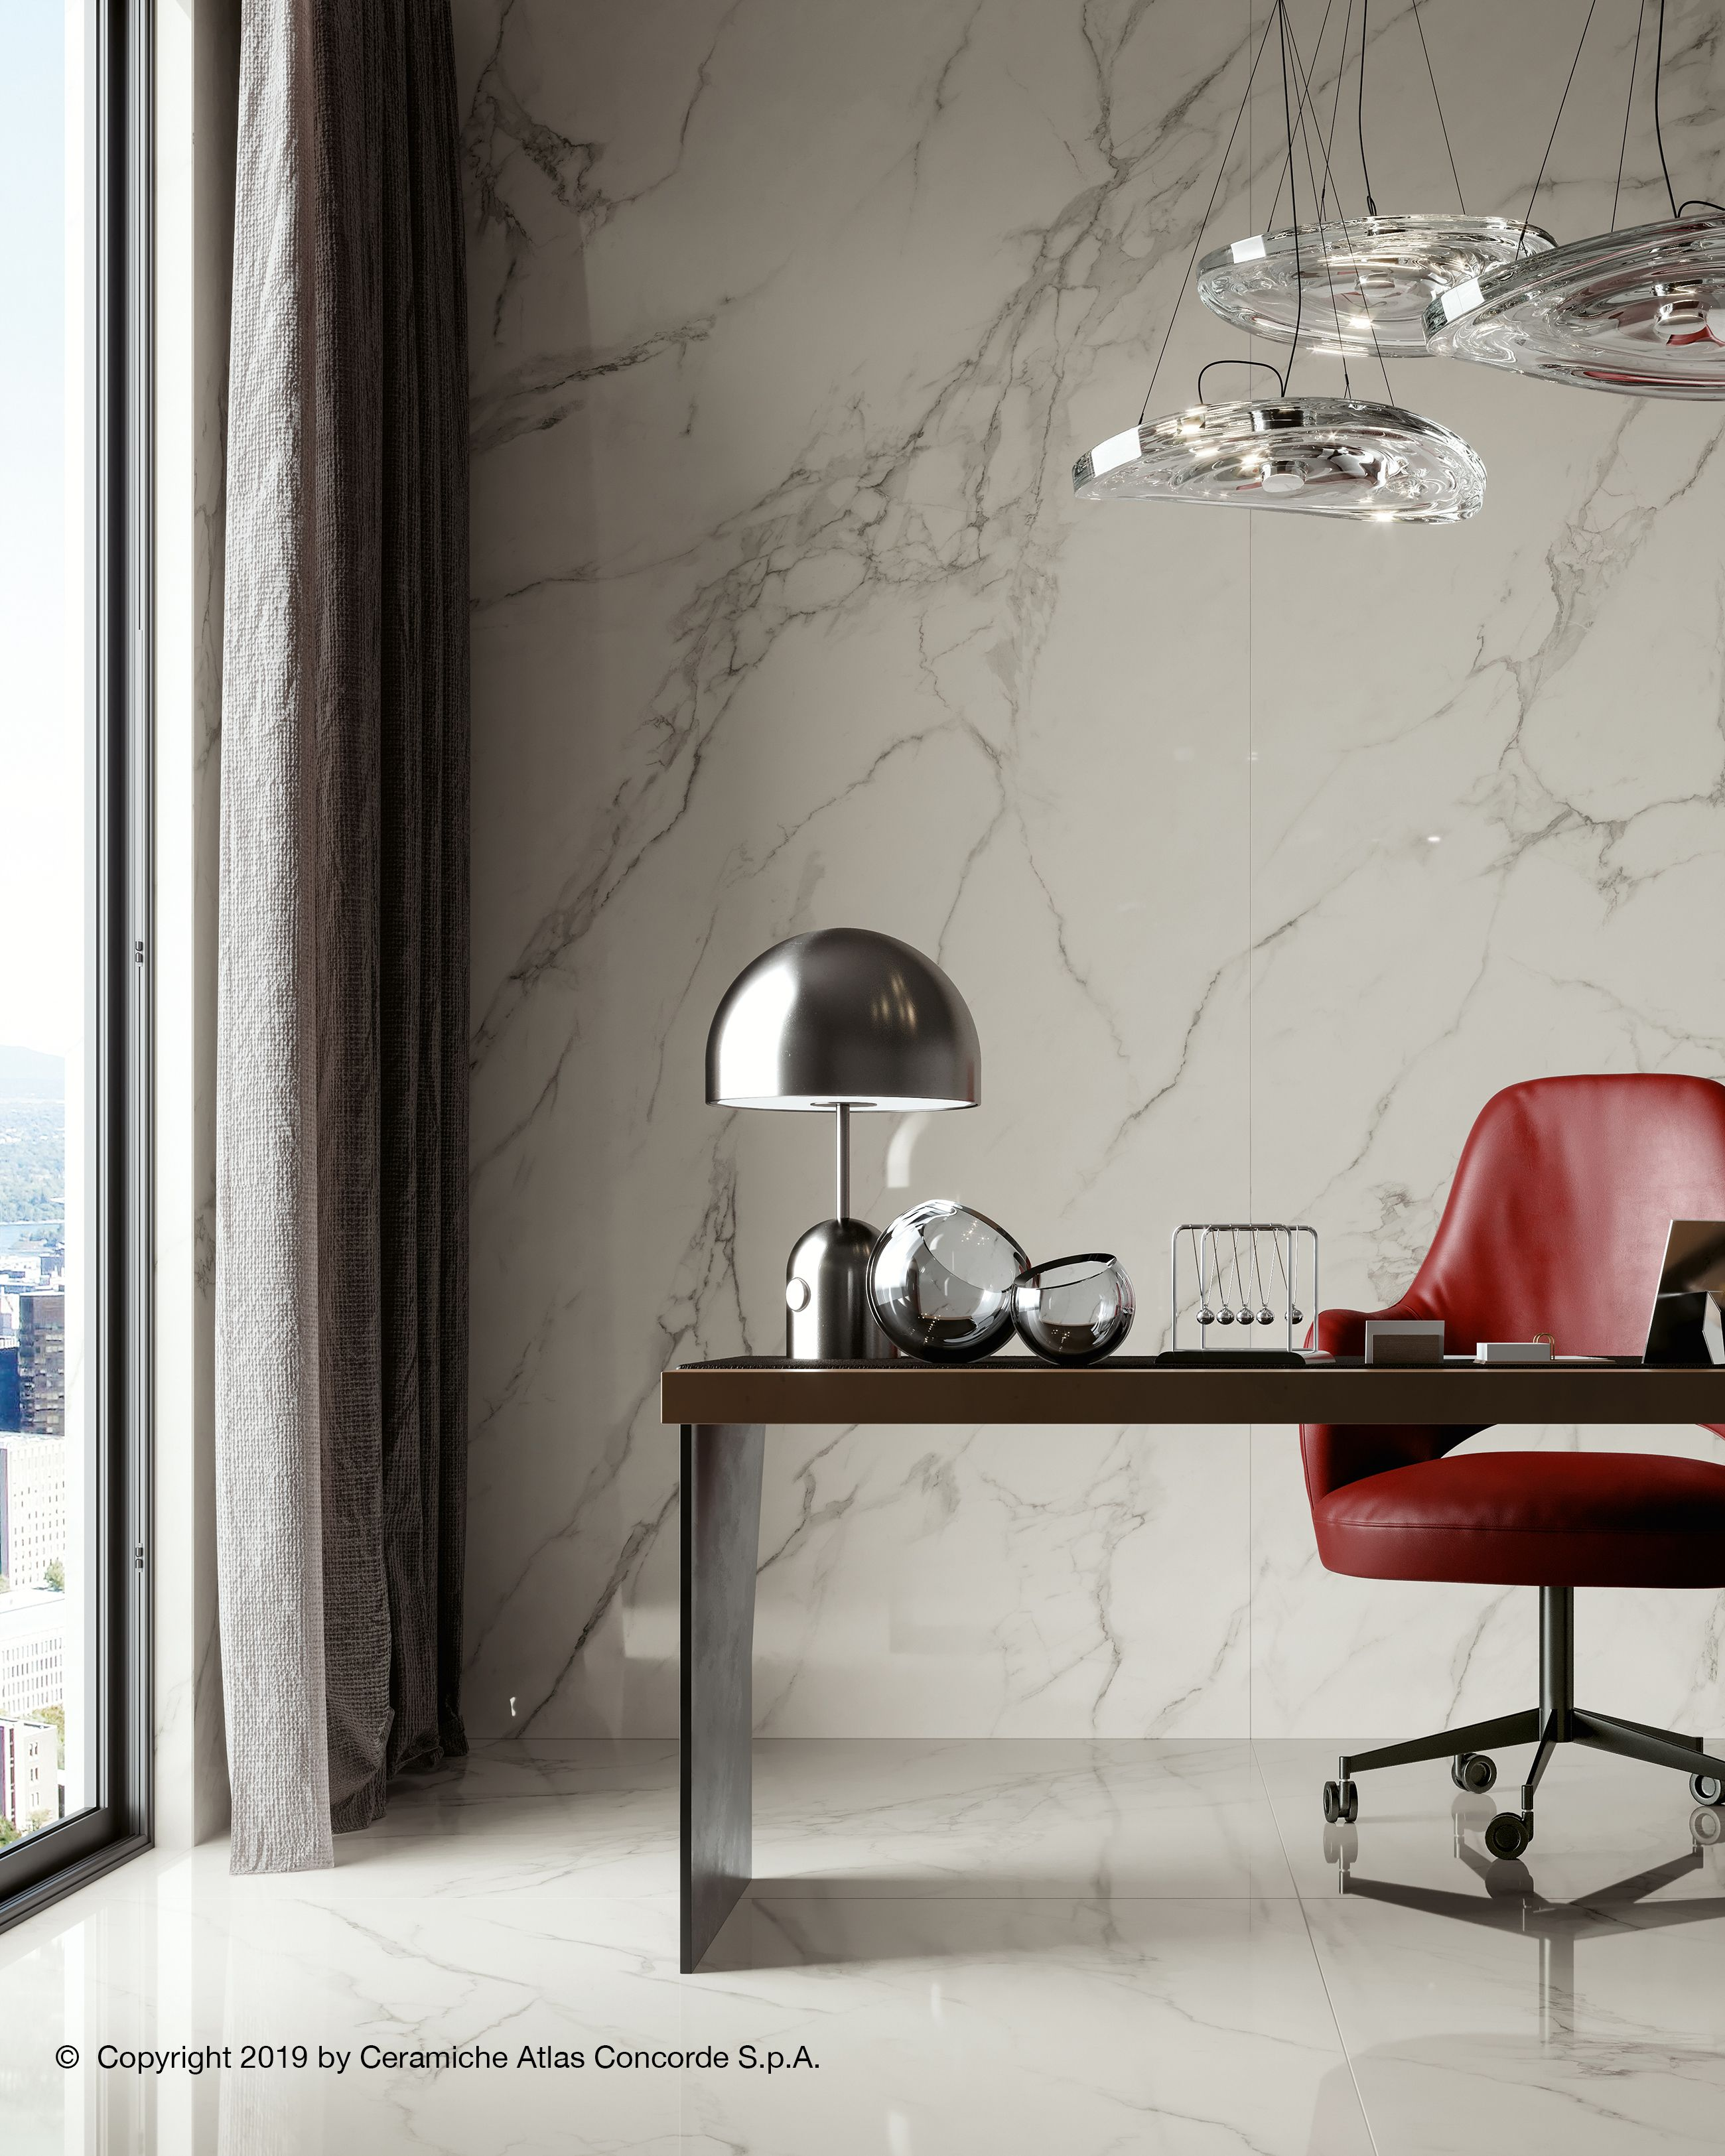 Case E Stili Design the wonder of the marble effect. from architecture to